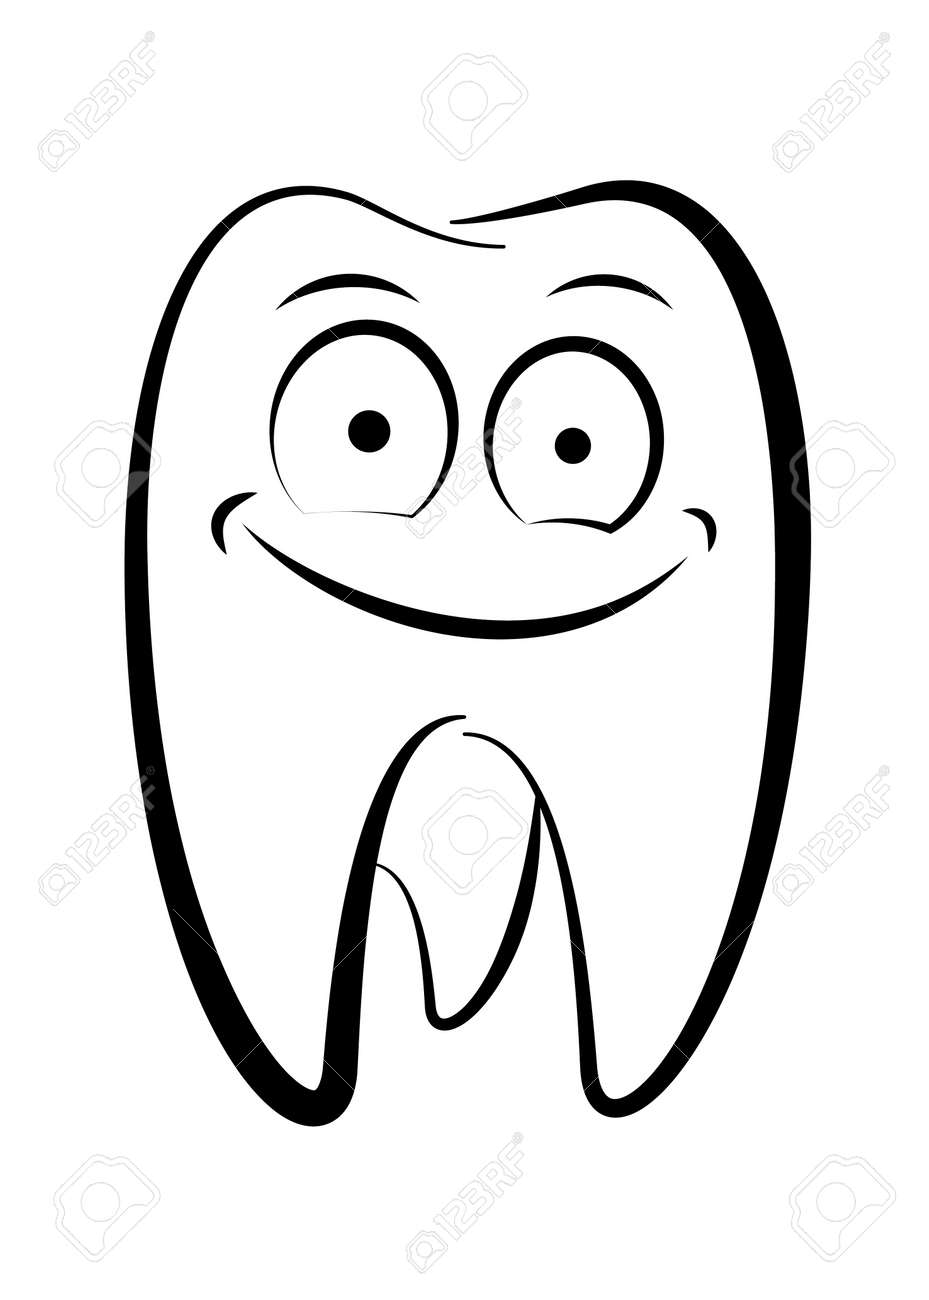 Dental character drawing on a white background Stock Vector - 9931496